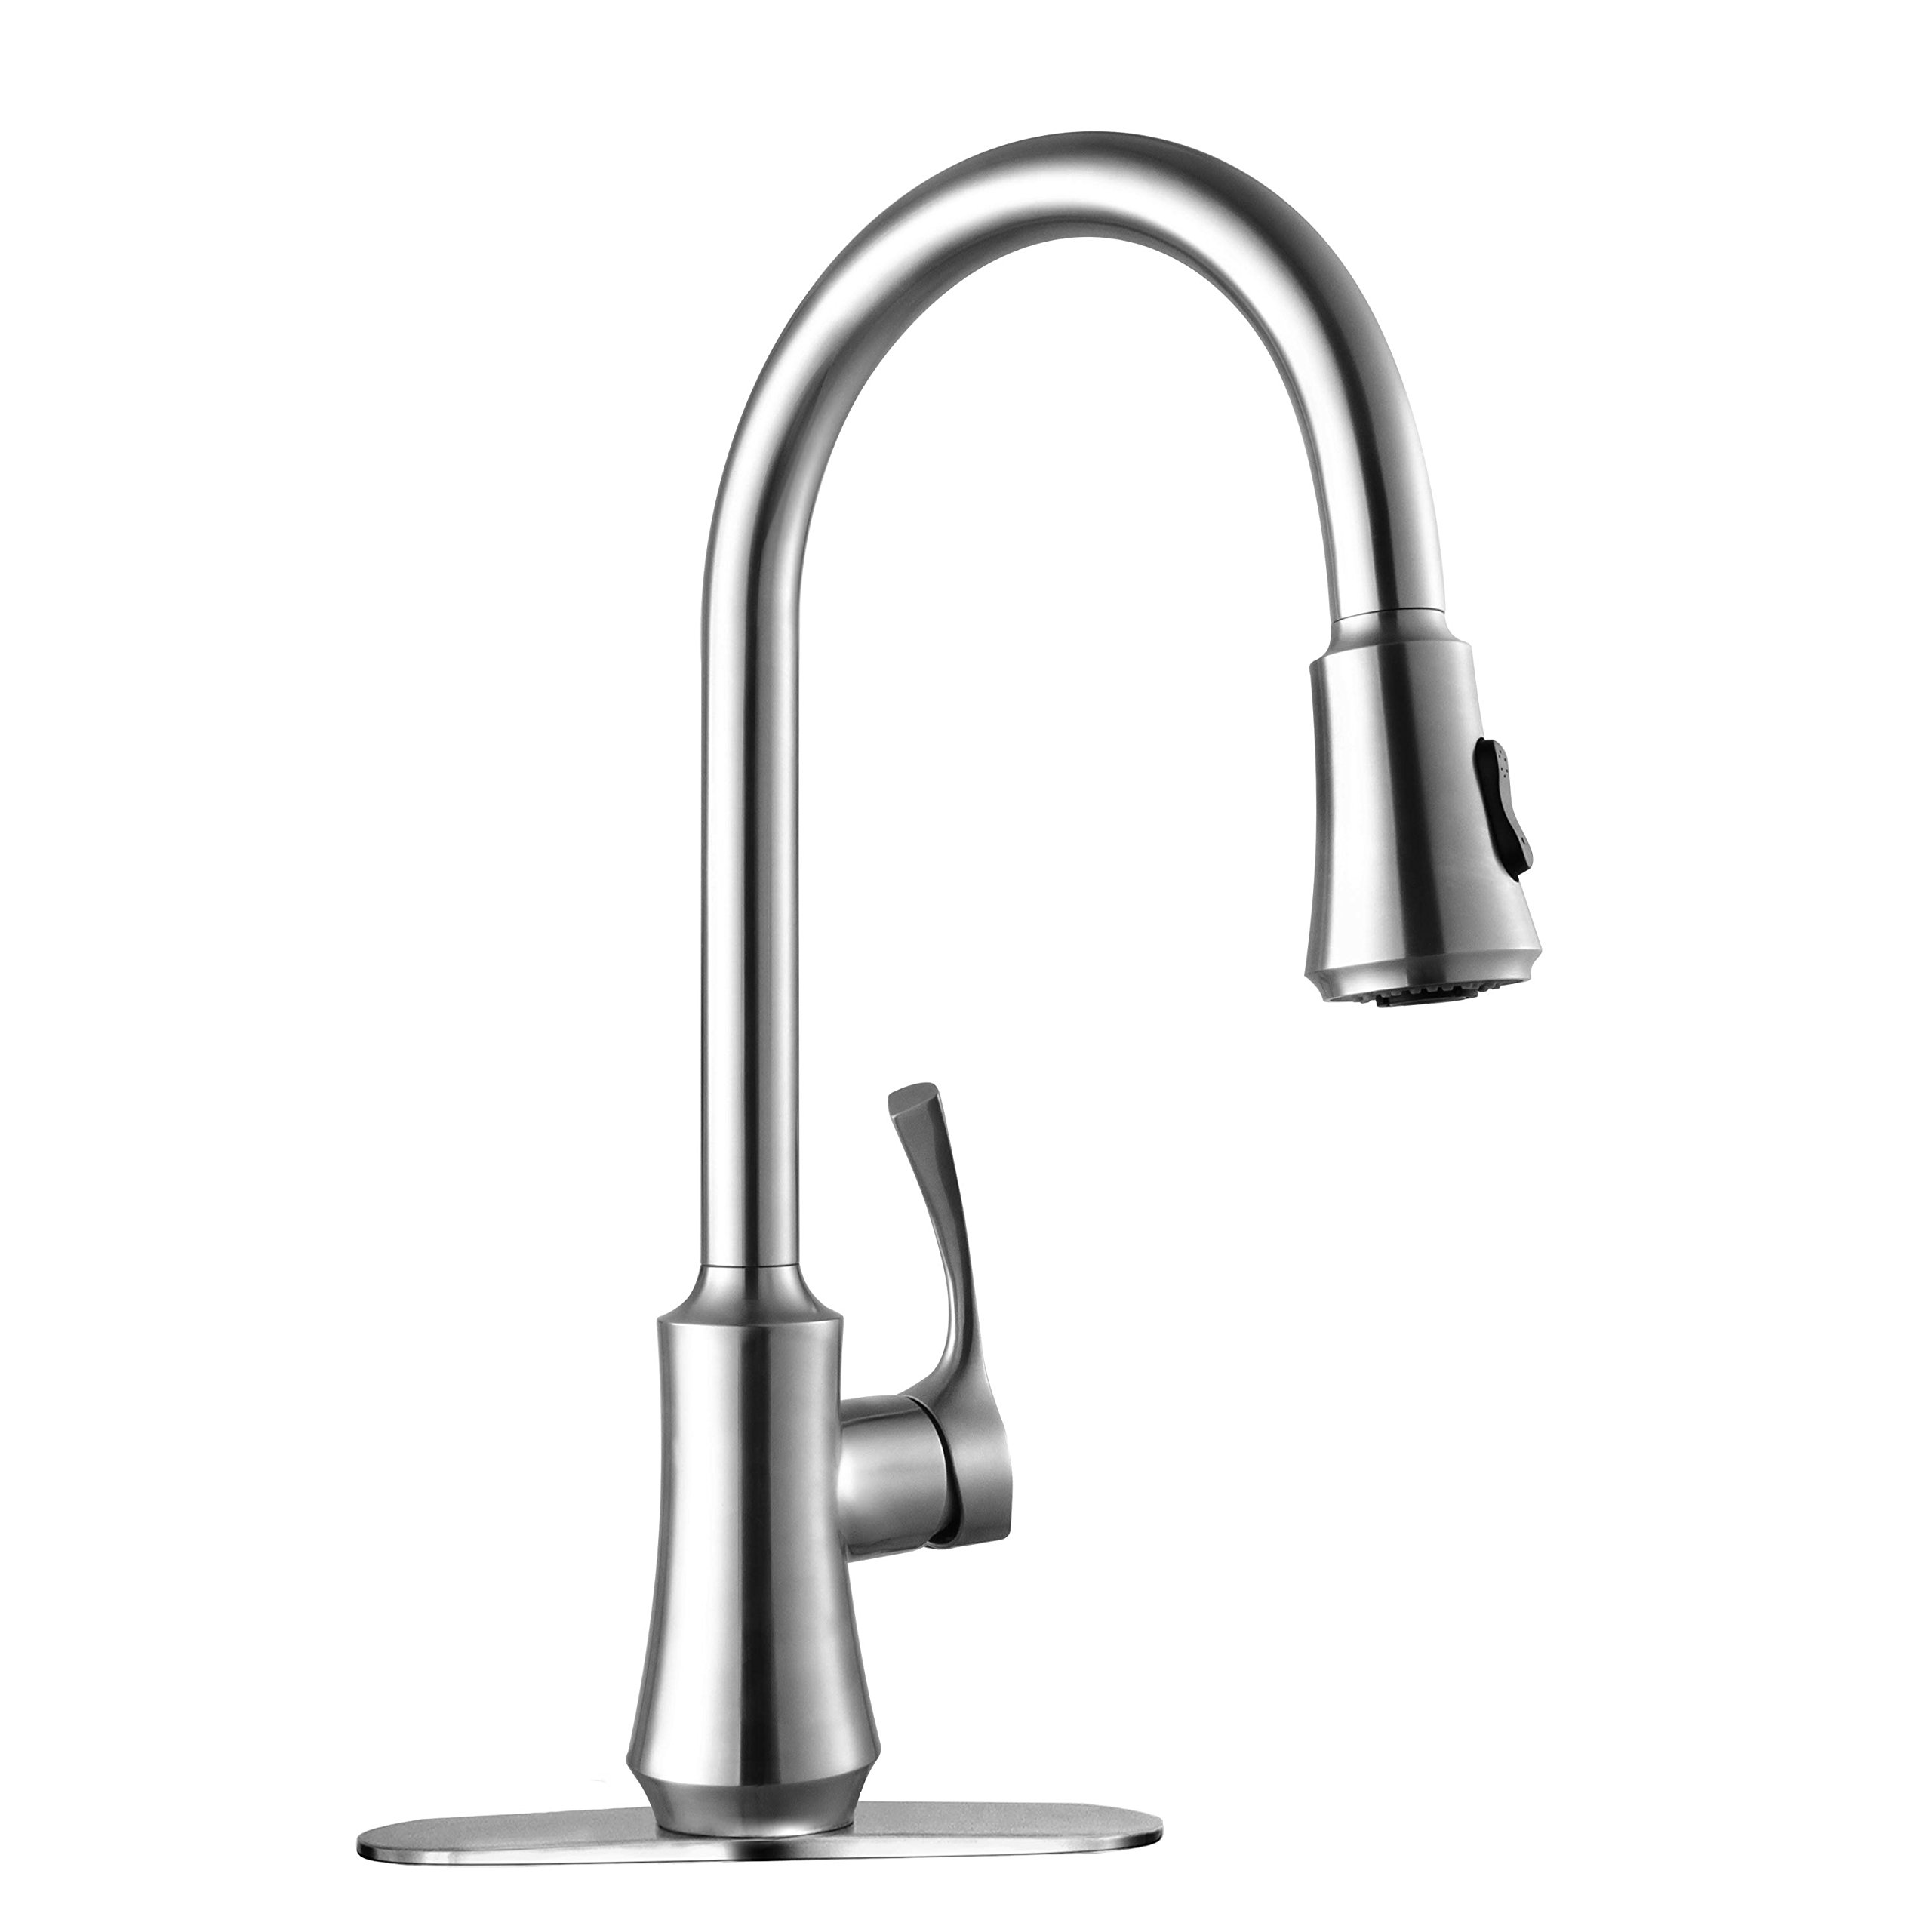 highest kitchen water gooseneck full of size faucets sprayer top simple faucet and rated companies touch white modern sink